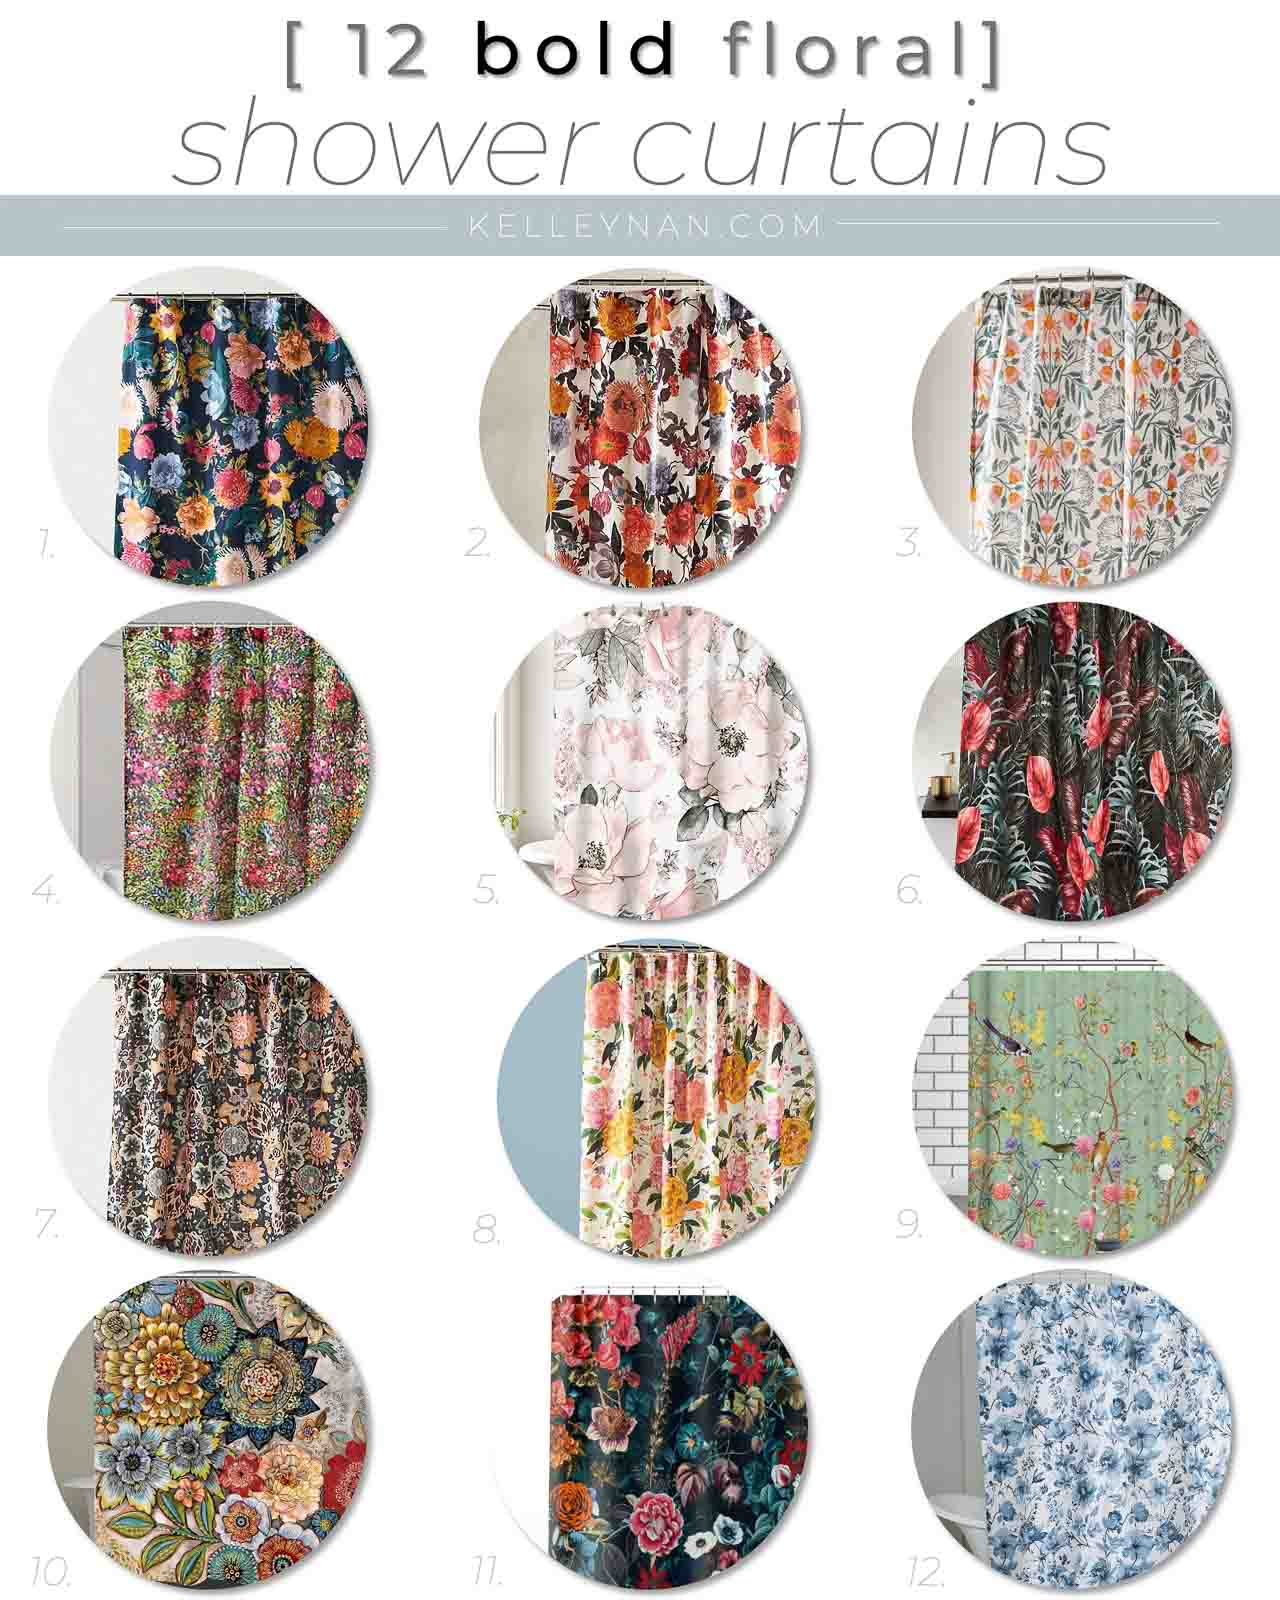 12 Colorful Bold Floral Shower Curtains for a Guest Bathroom